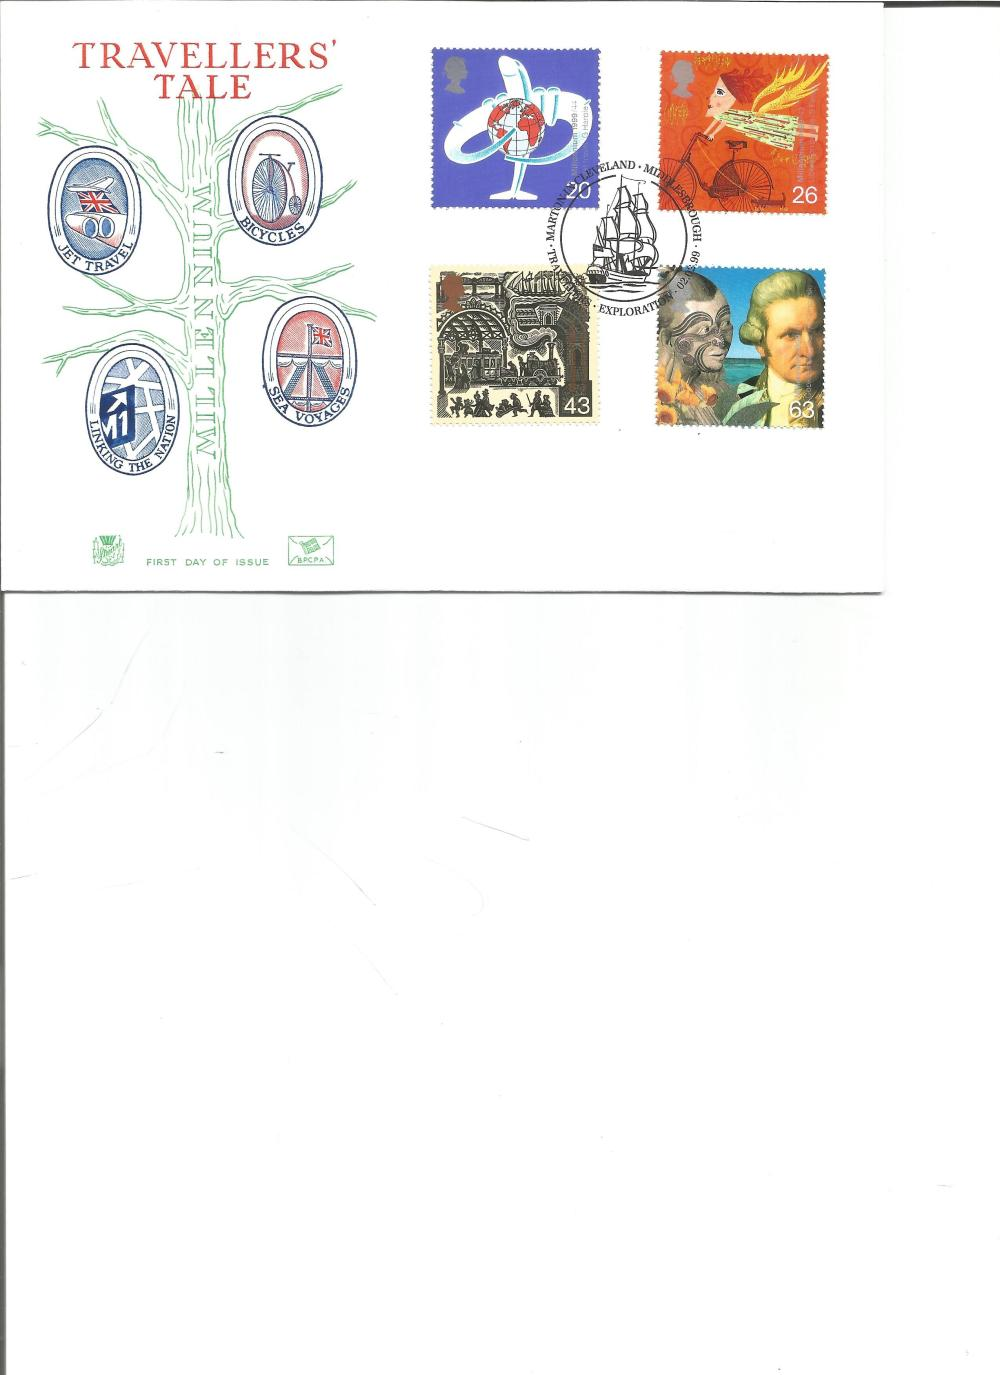 FDC Travellers Tale c/w set of four stamps PM Marton in Cleveland , Middlesbrough , Travellers